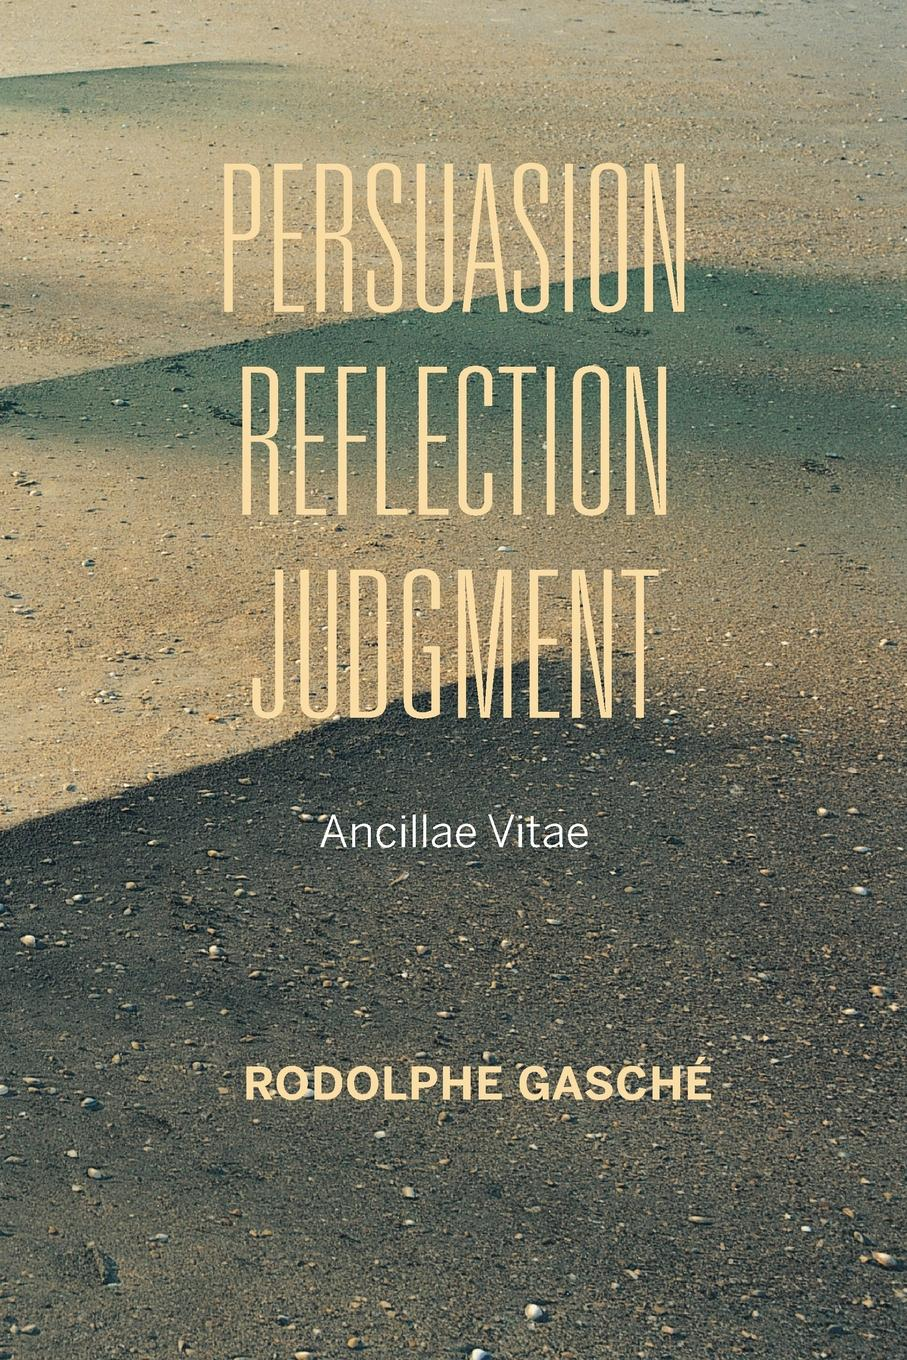 Rodolphe Gaschae Persuasion, Reflection, Judgment. Ancillae Vitae heinrichs jay how to argue with a cat human s guide to the art of persuasion